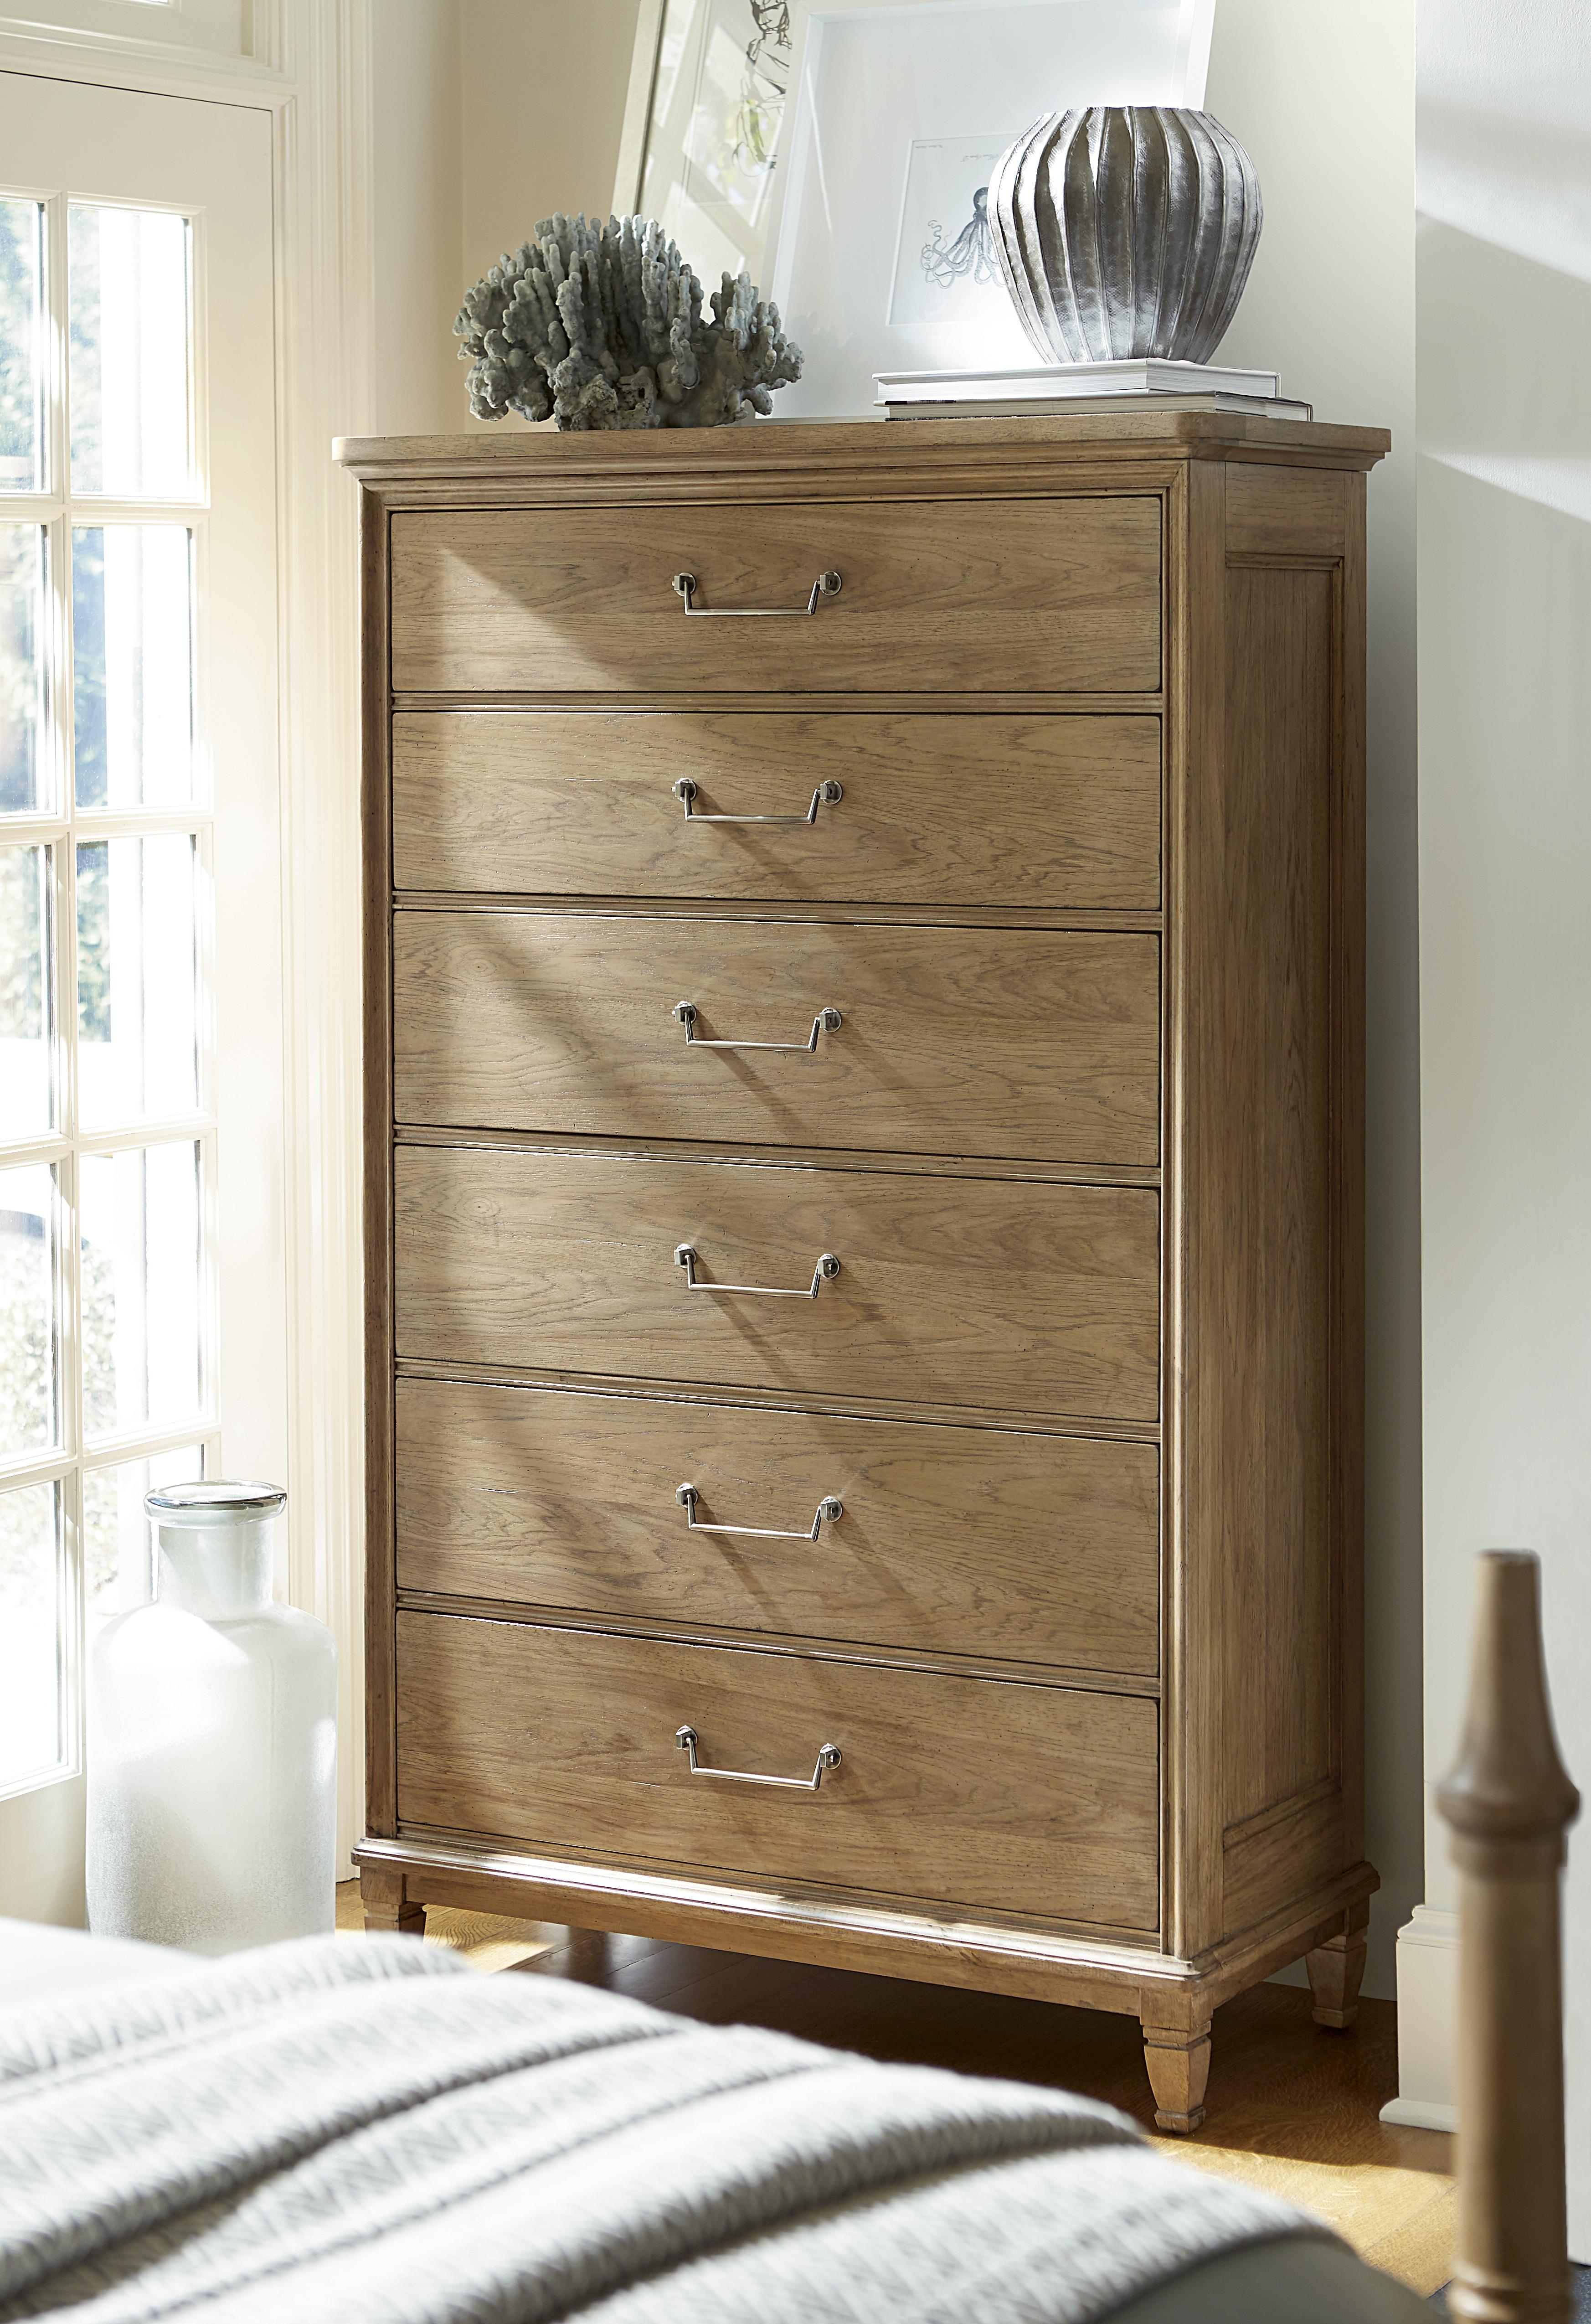 Morris Home Furnishings Montpelier Montpelier Chest of Drawers - Item Number: 556005821